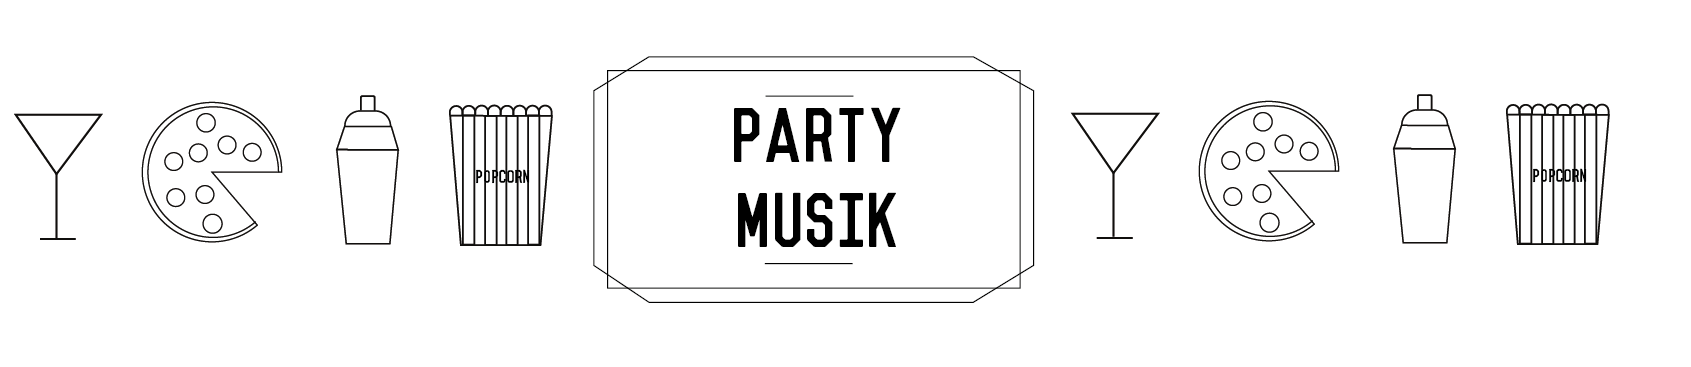 Party Musik